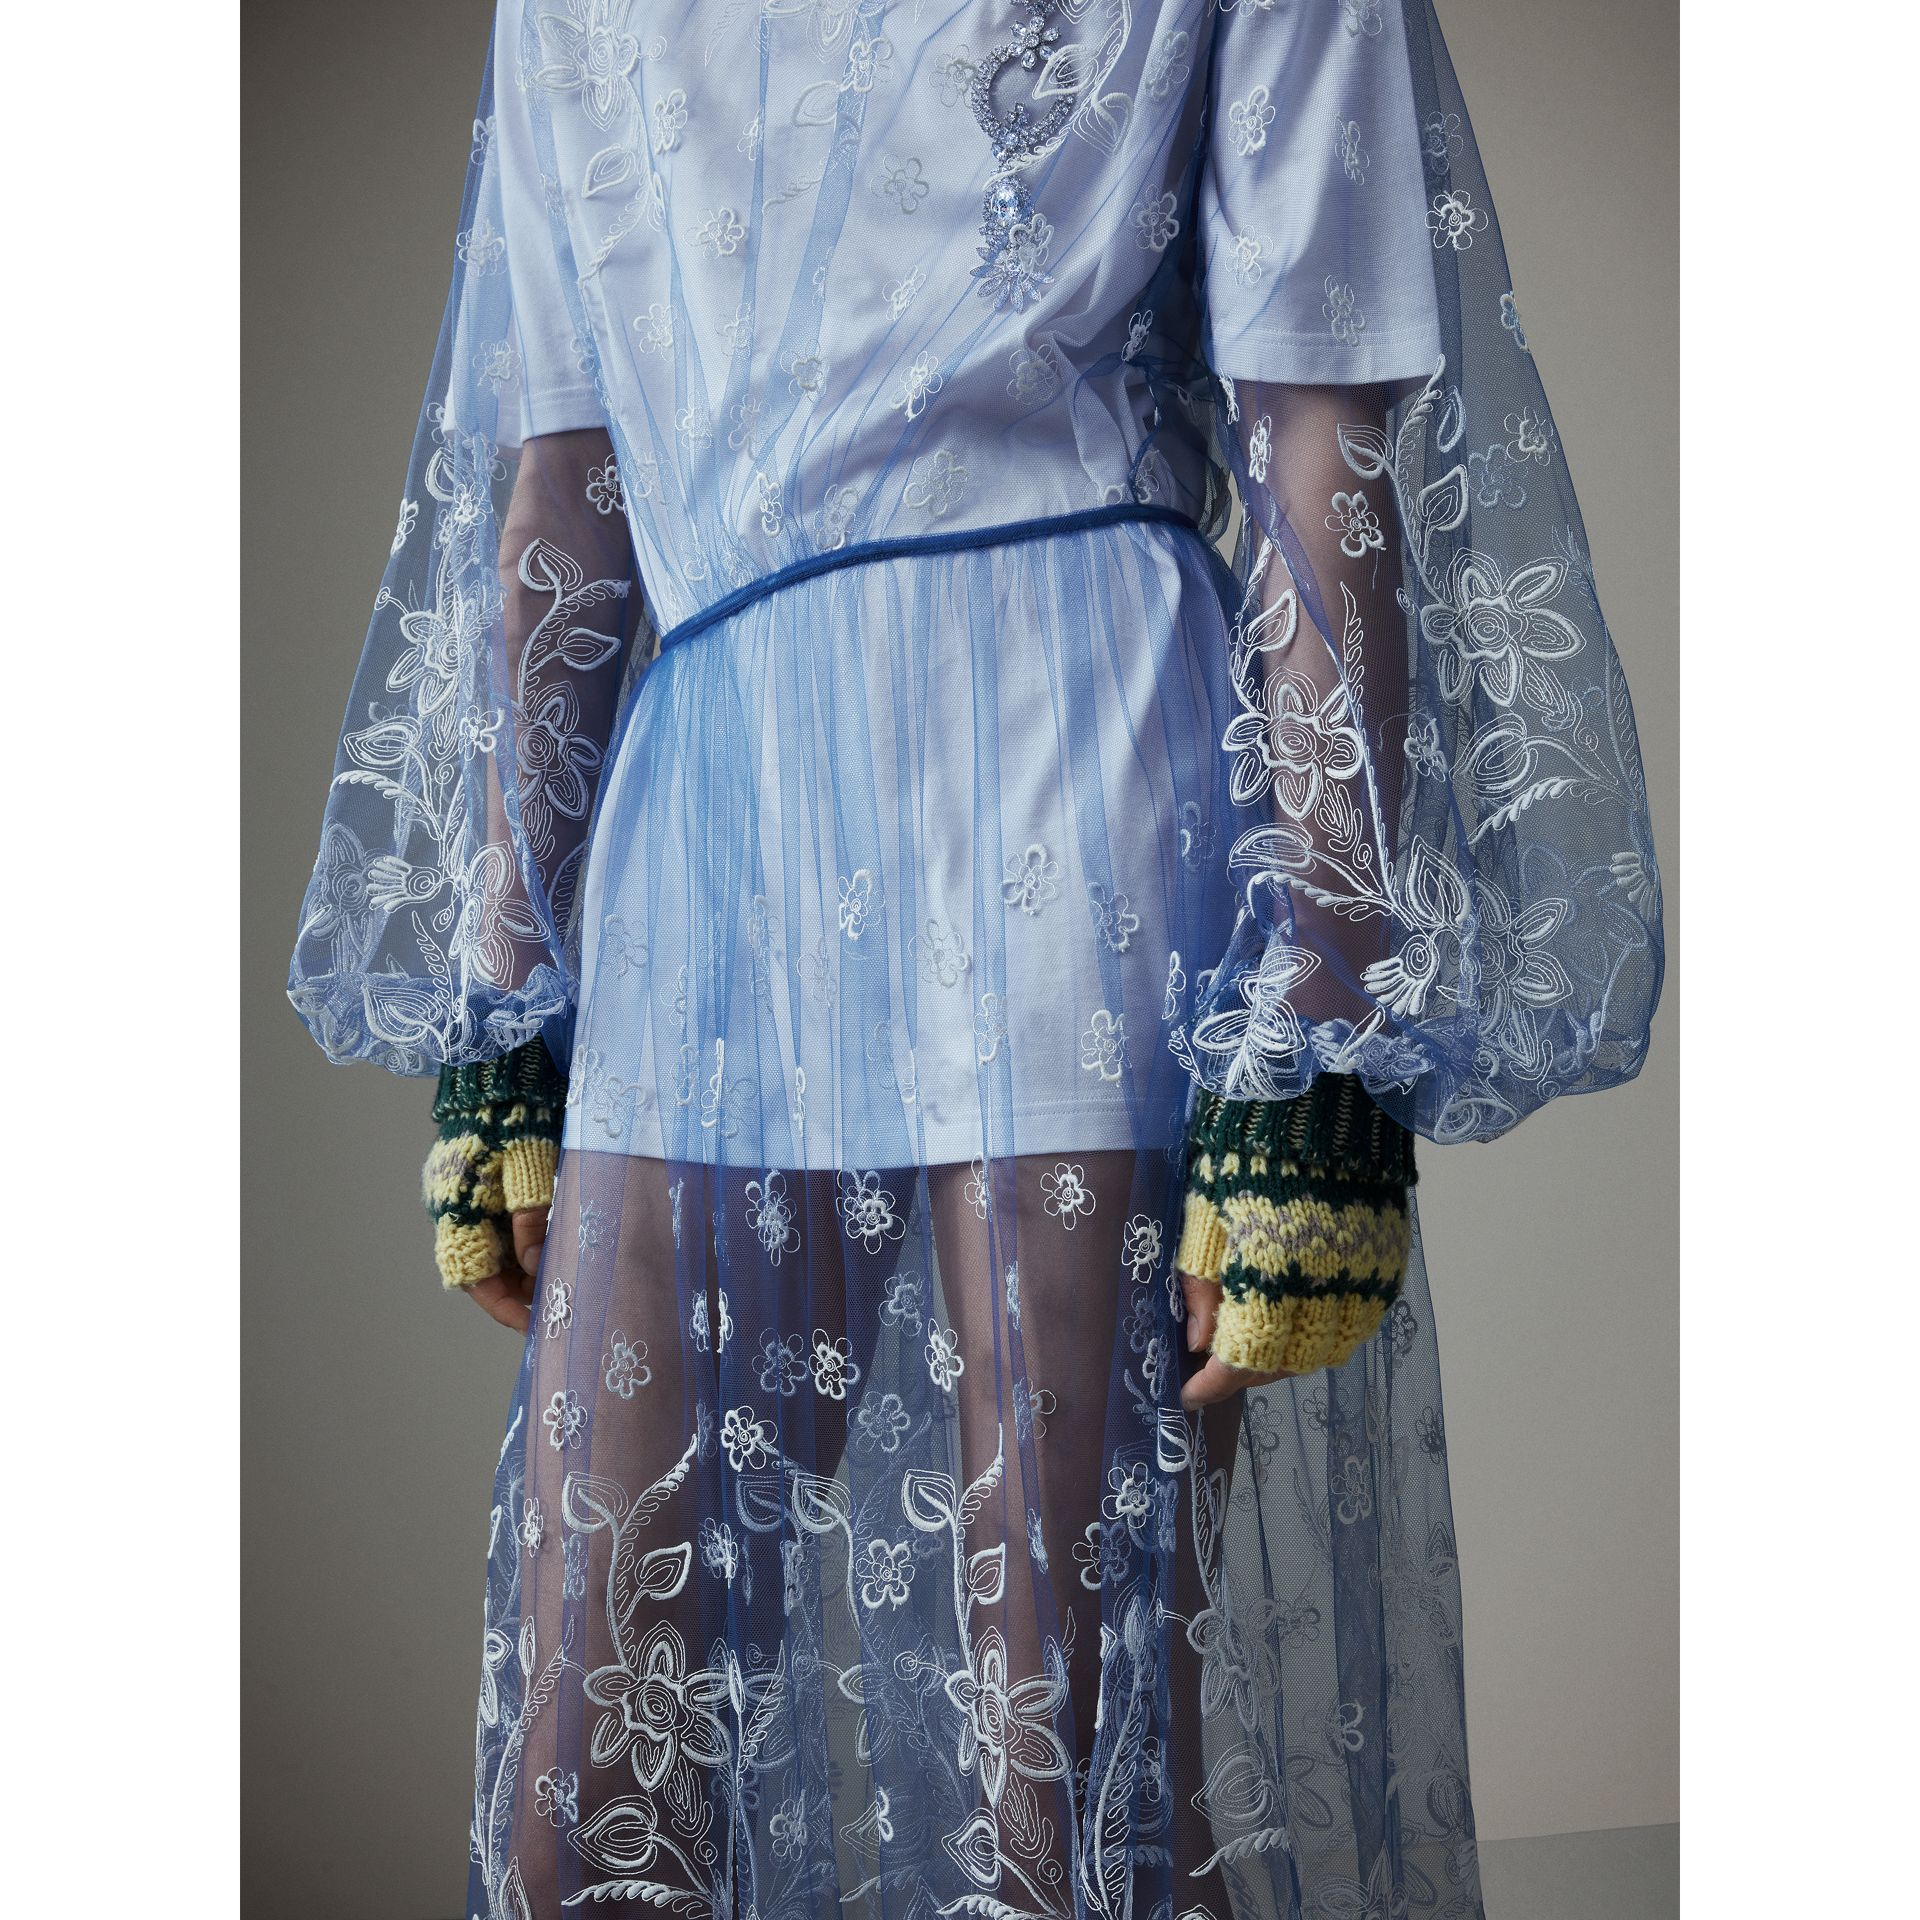 Puff-sleeve Embroidered Tulle Dress in Hydrangea Blue/white - Women | Burberry Hong Kong - gallery image 1